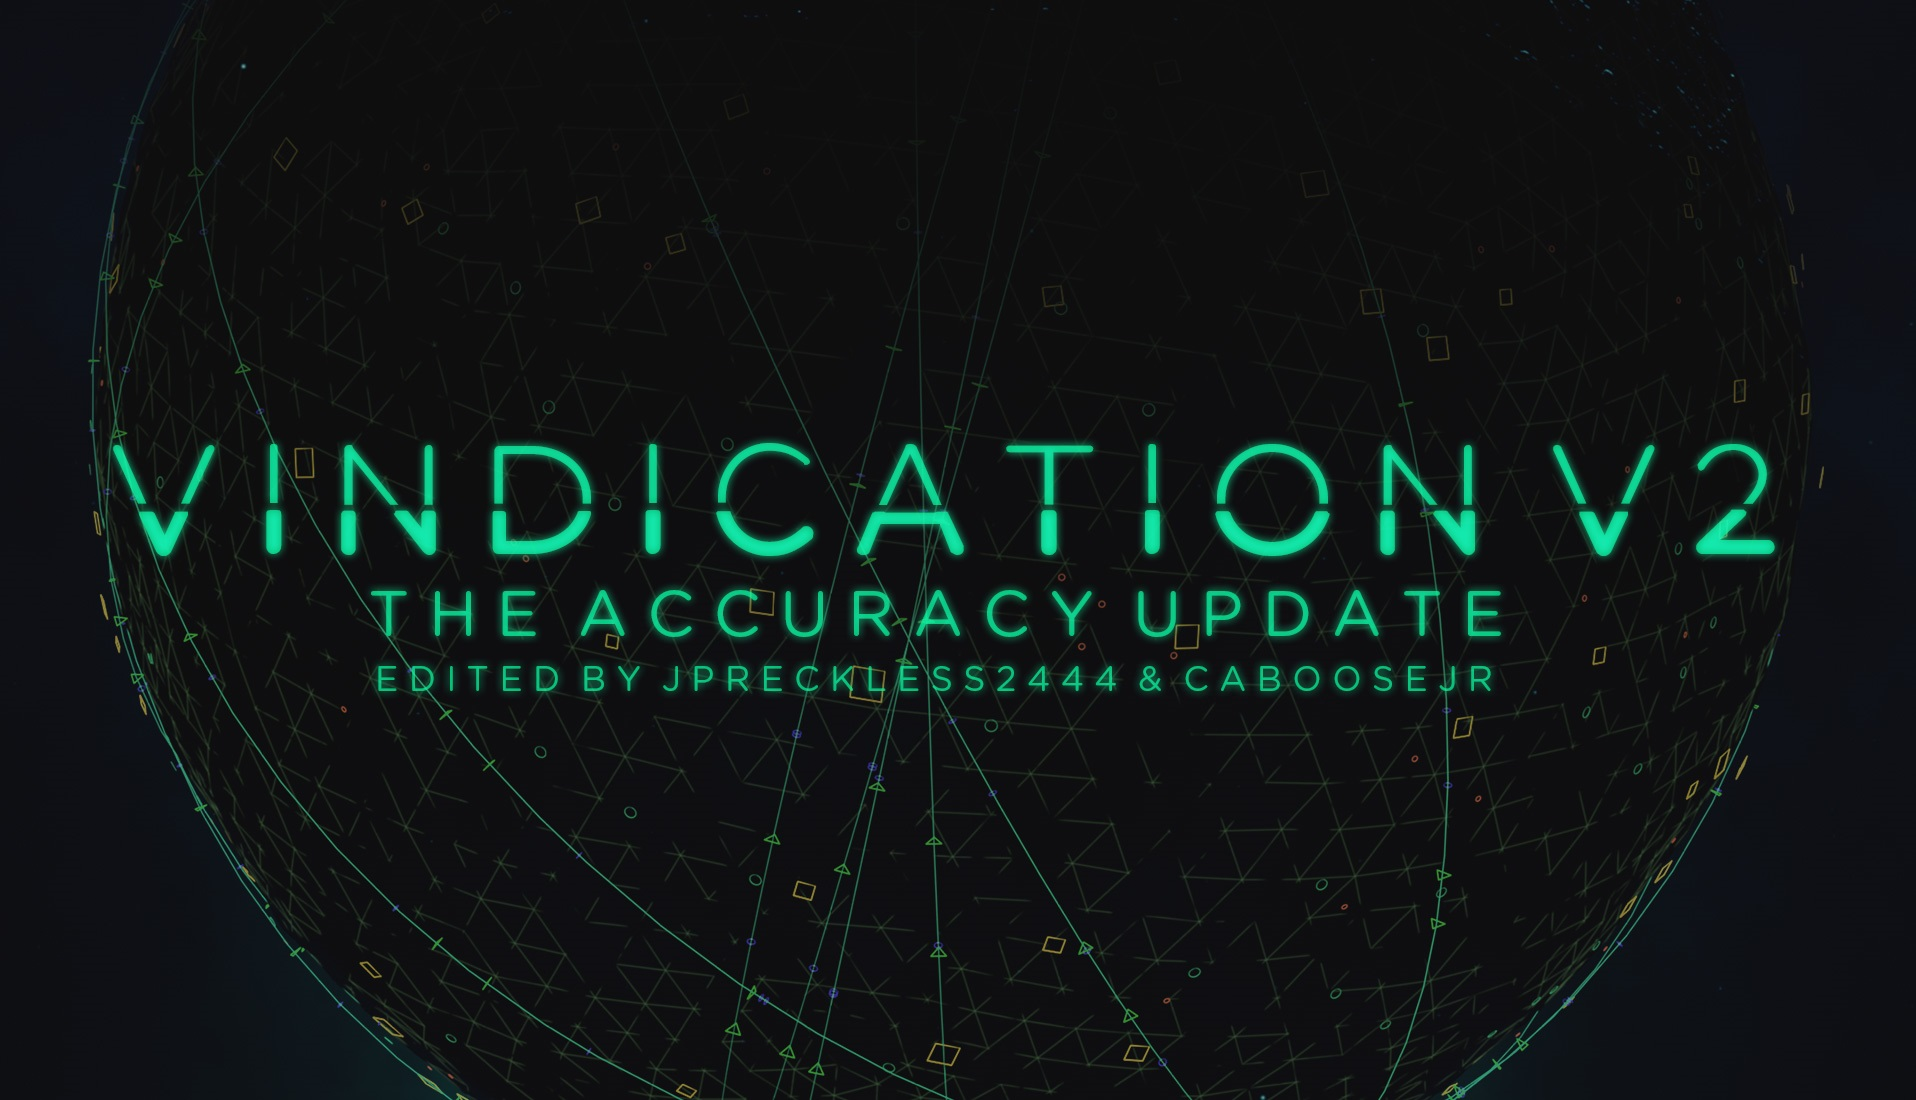 Toonami - Vindication V2 Font by JPReckless2444